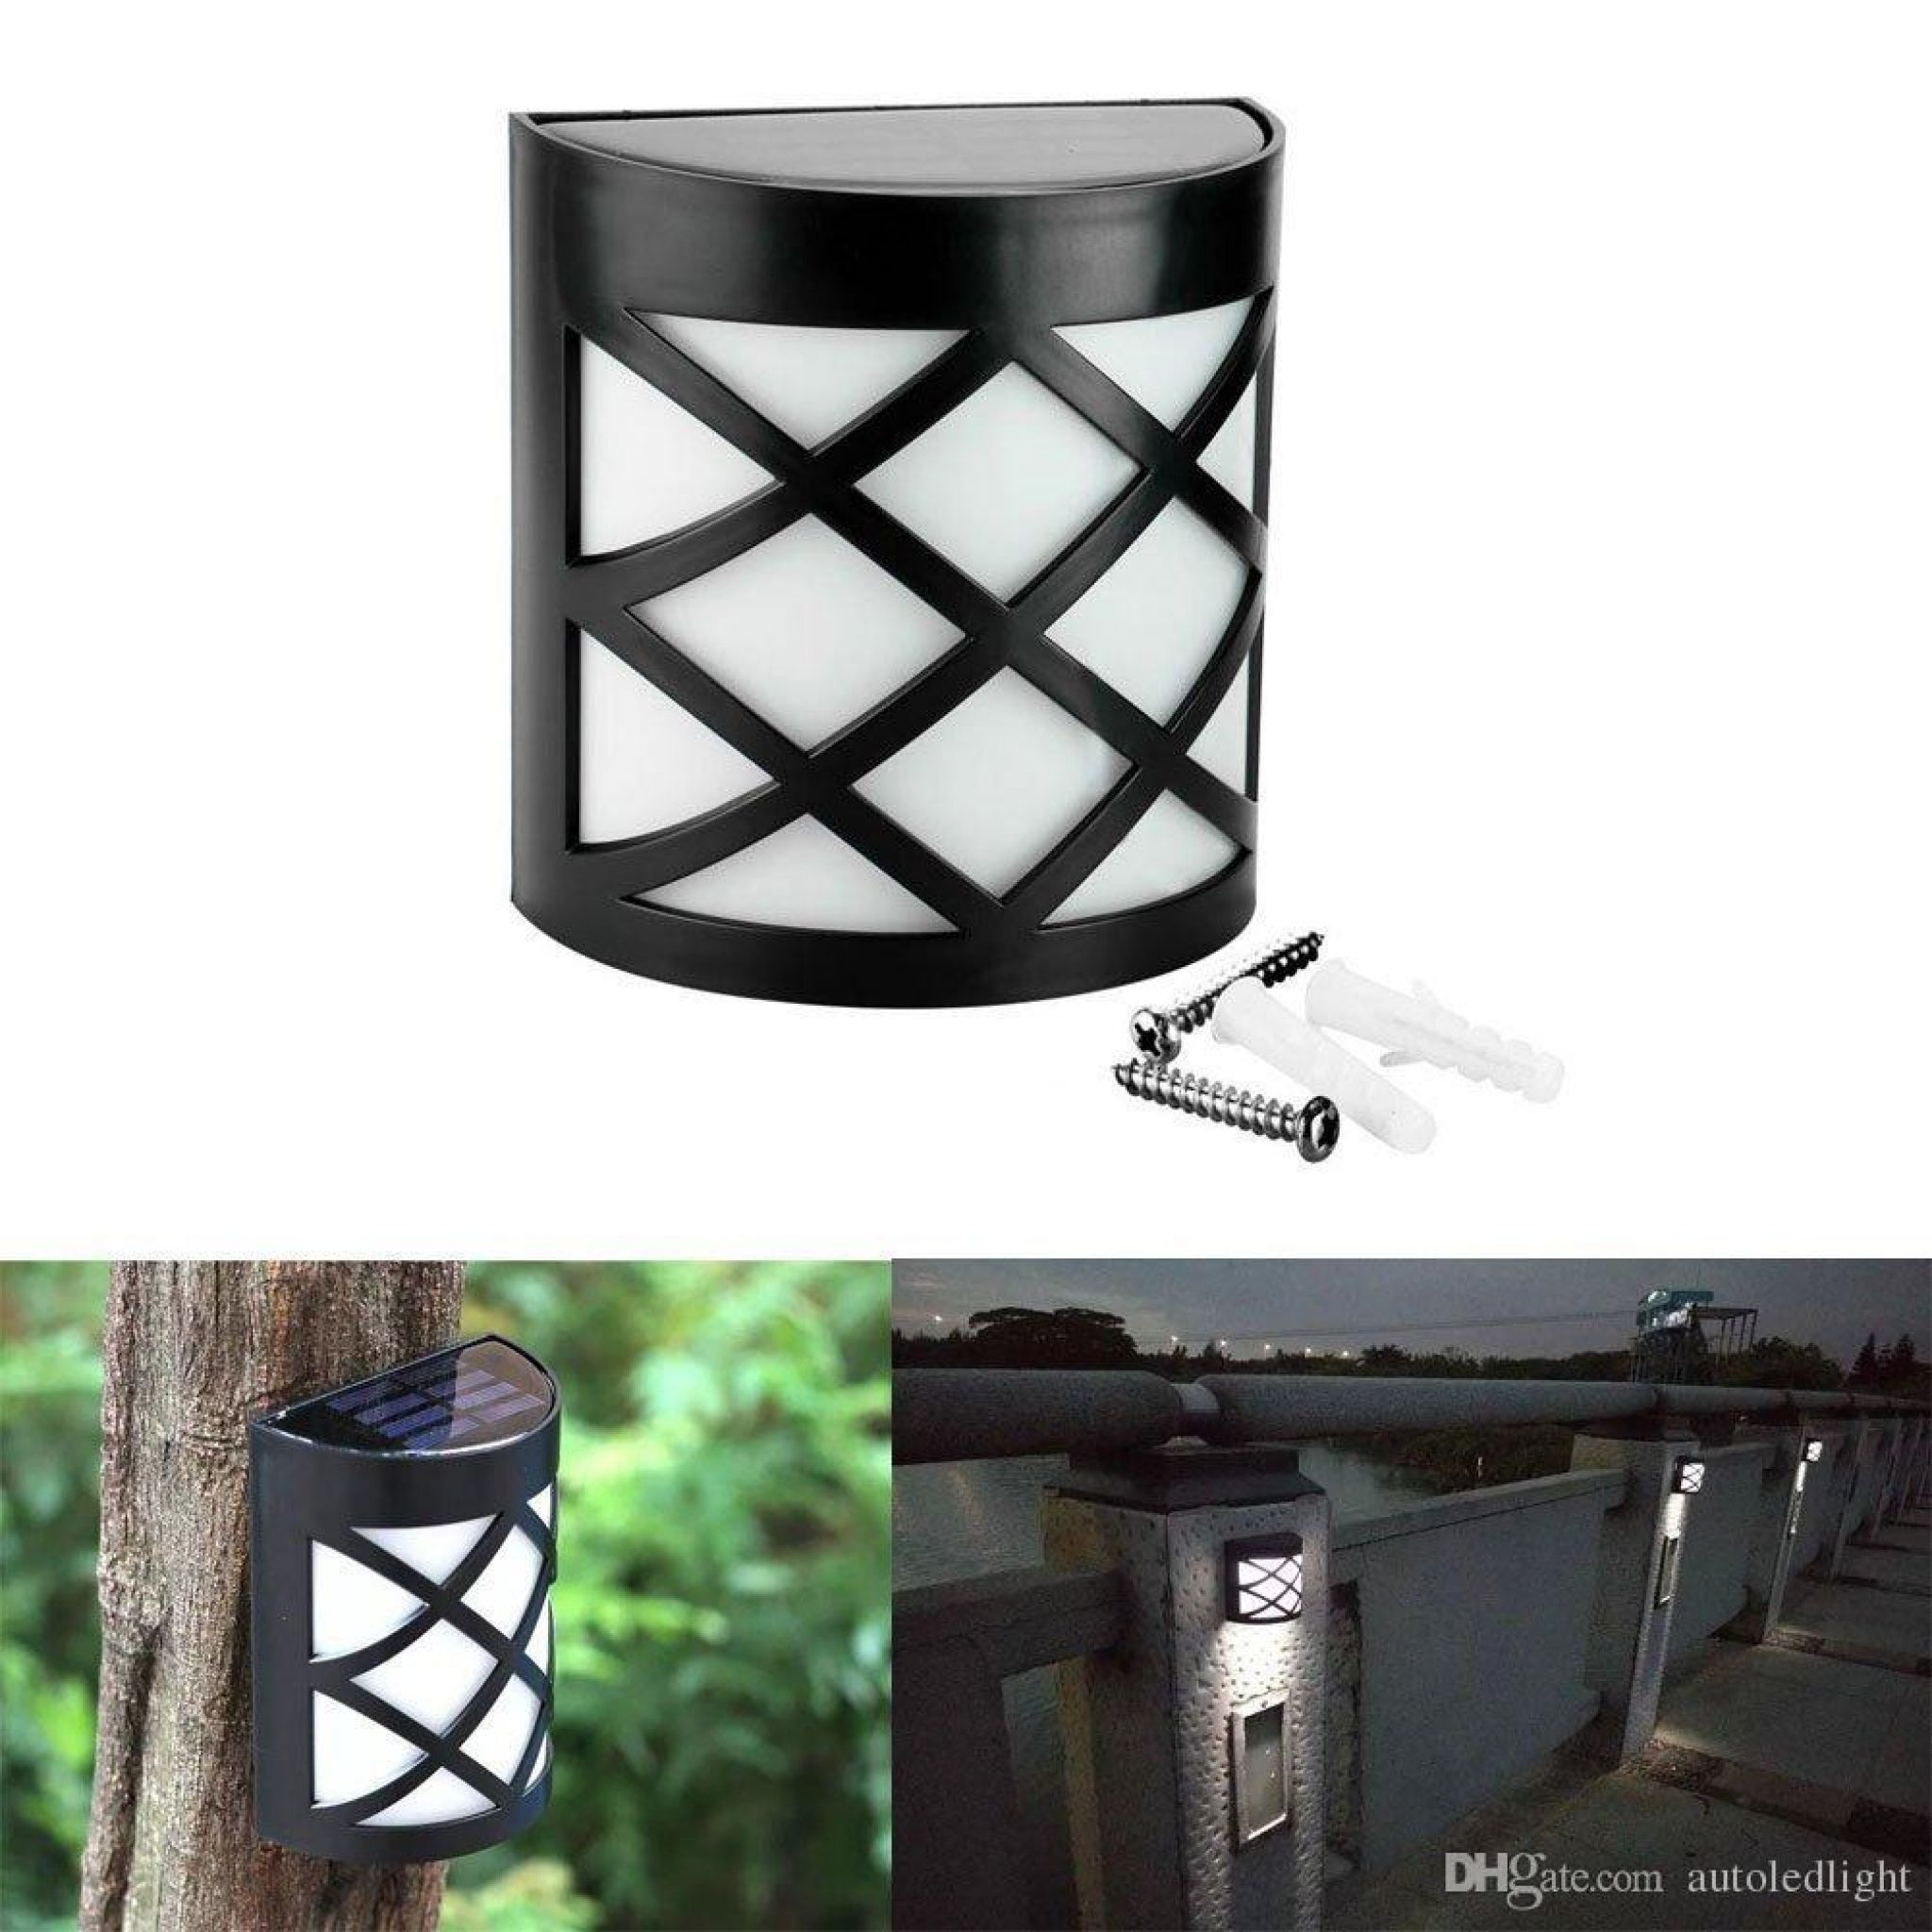 Outdoor Solar Lights Lowes Endearing Outdoor Solar Powered Lights  Lowes Paint Colors Interior Check Decorating Inspiration